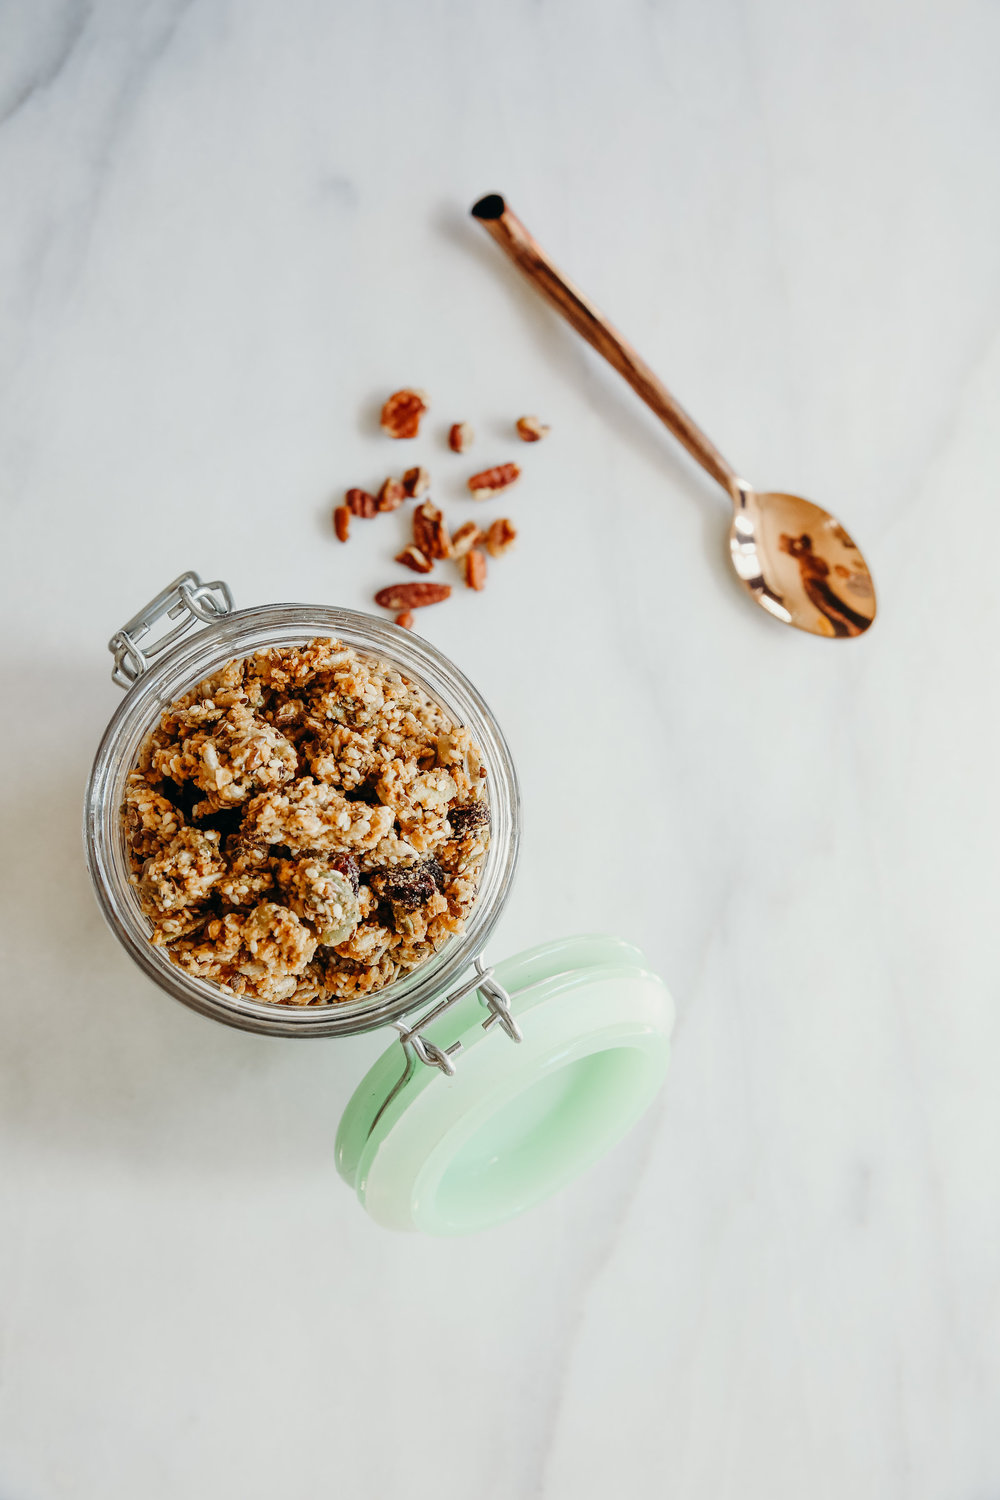 Granola with Spoon | Food Photography | Hillary Jeanne Photography